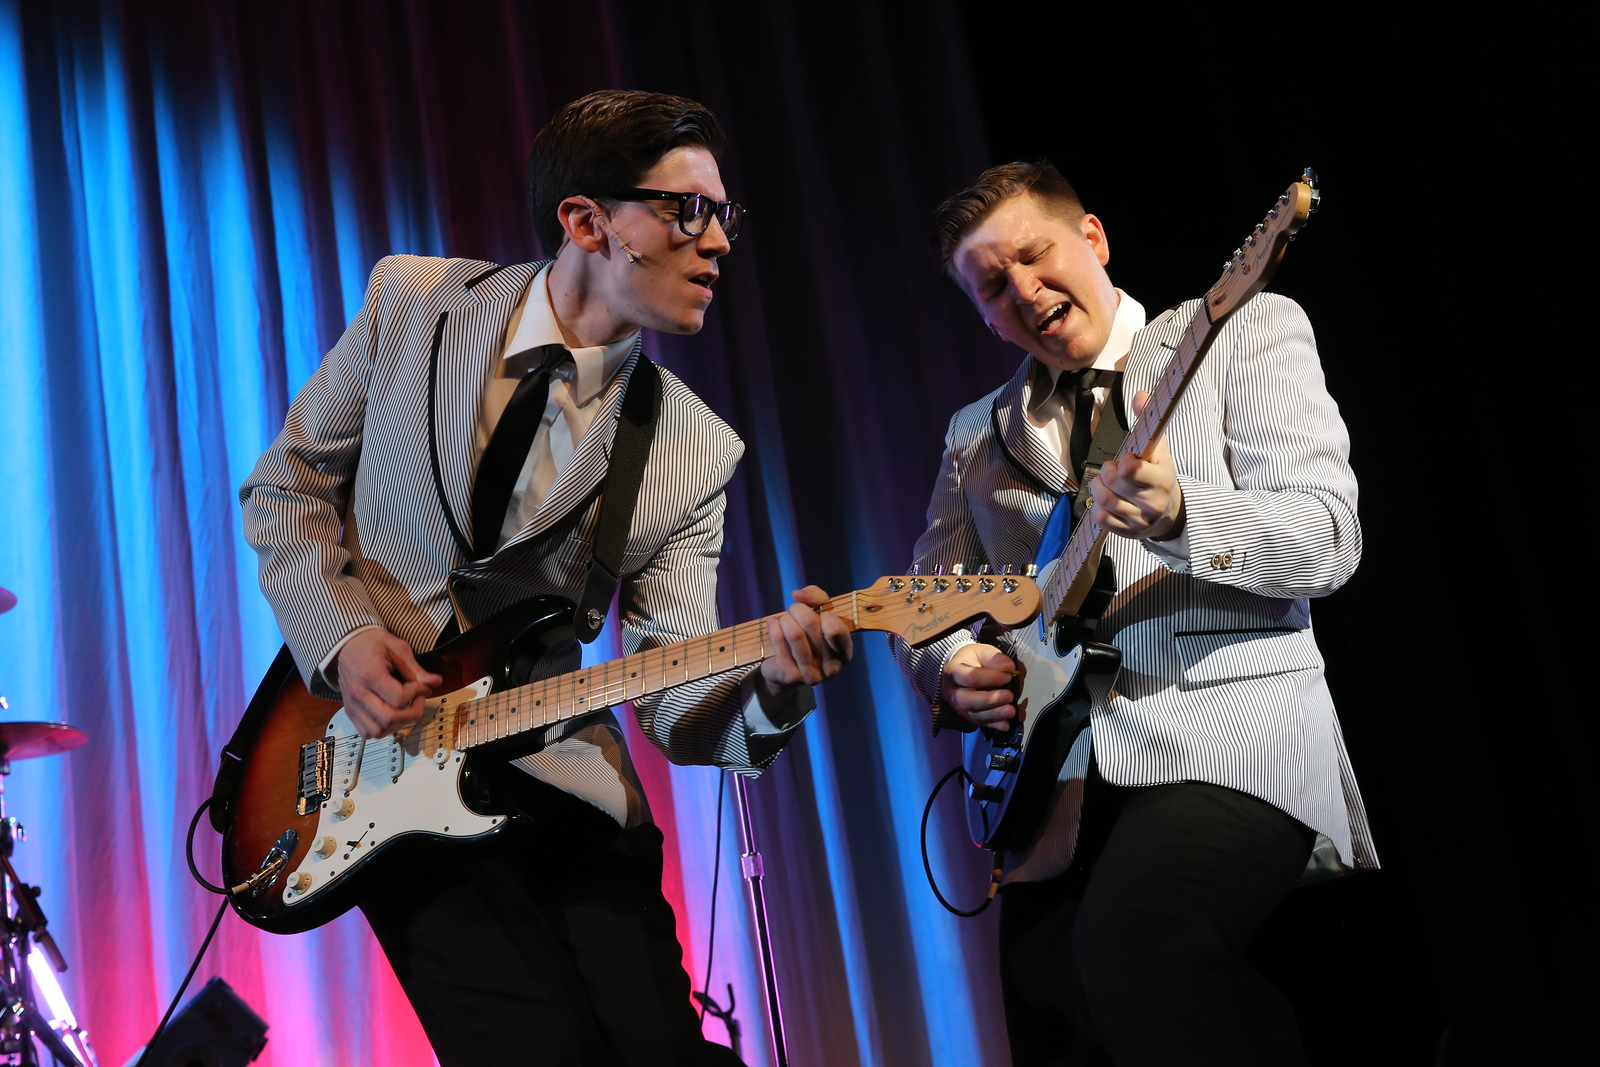 BUDDY: The Buddy Holly Story